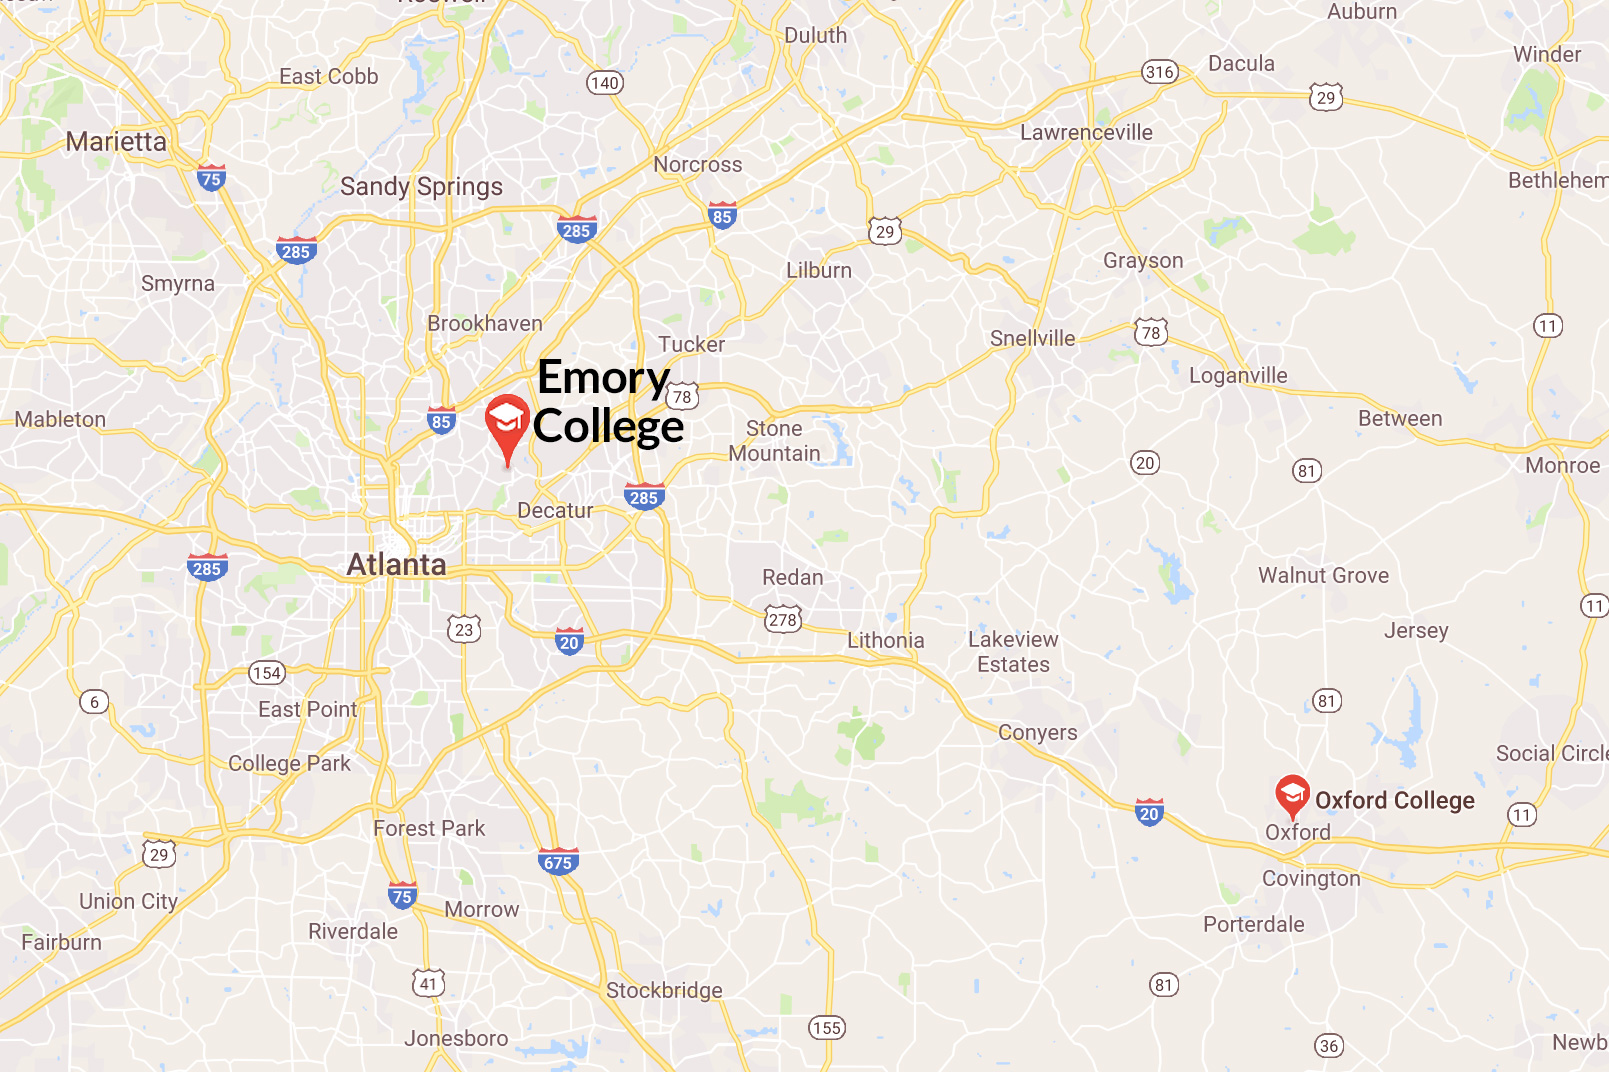 Directions and Details | Emory University | Atlanta GA on satellite view of georgia, google maps singapore, google maps india, large map of georgia, general map of georgia, google maps washington, google georgia usa, google maps ga, google maps london, topo map of georgia, google maps ireland, google maps france, google maps philippines, slideshow of georgia, google maps australia, google maps georgia state, features of georgia, zoomable map of georgia, sherman invades georgia, resources of georgia,